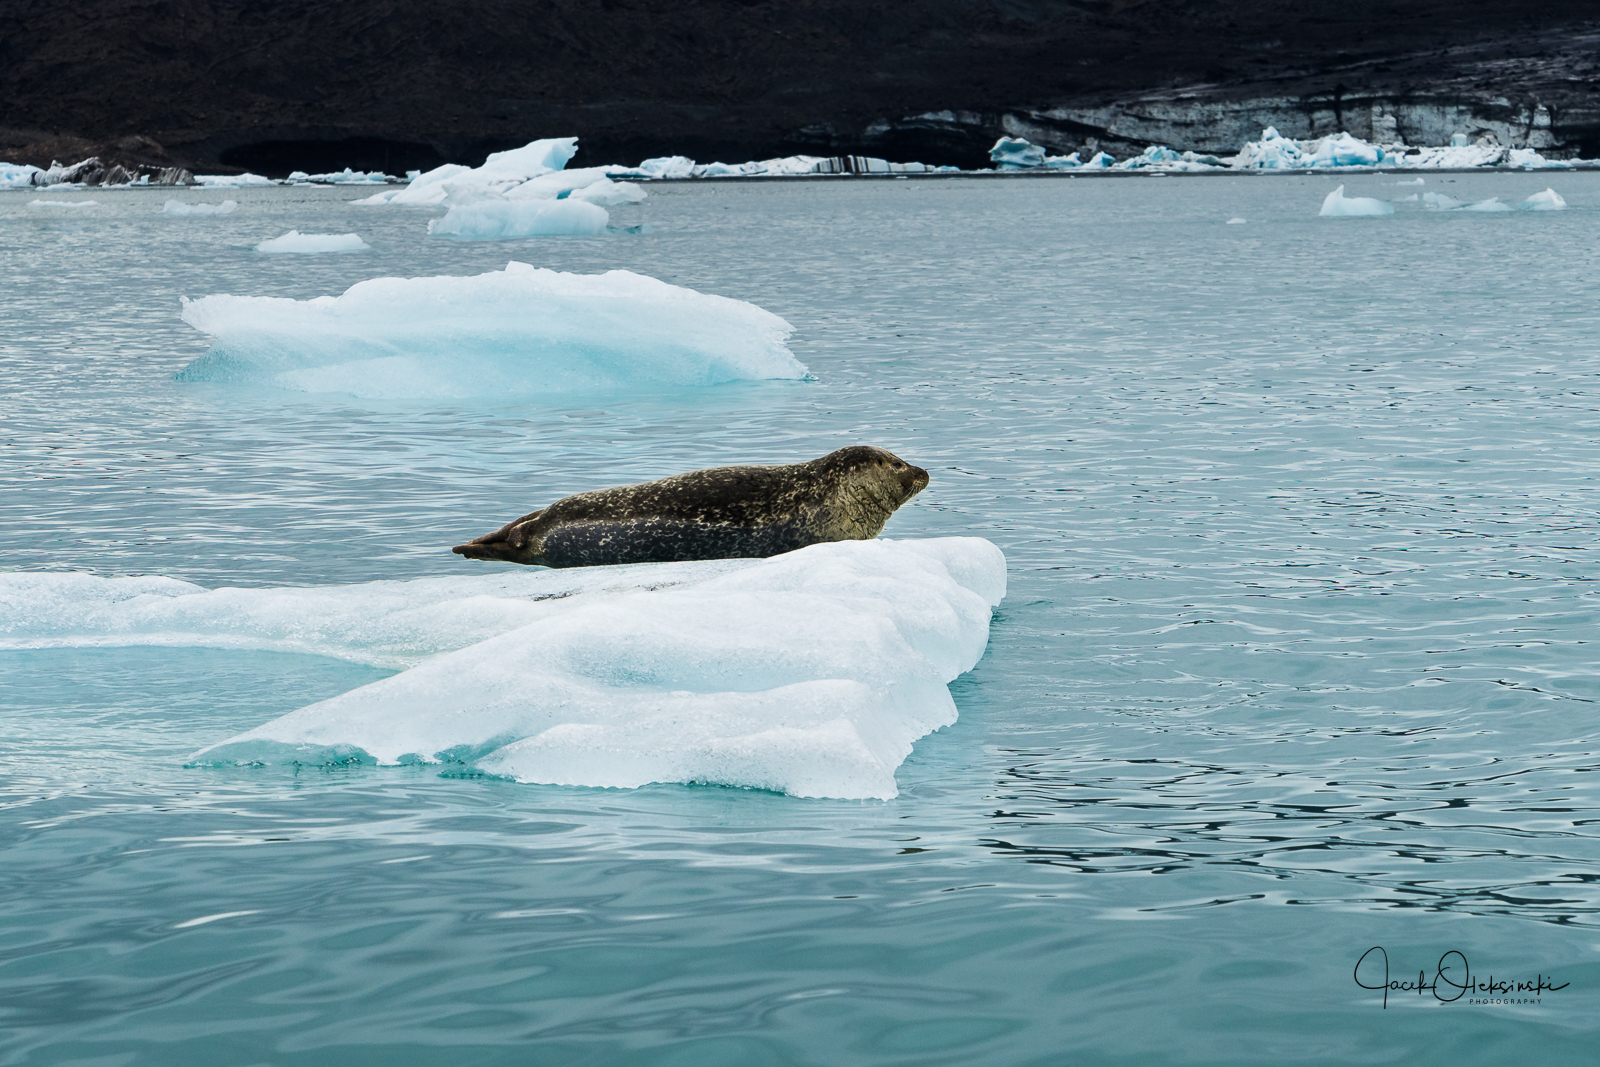 Seal resting on one of the many icebergs